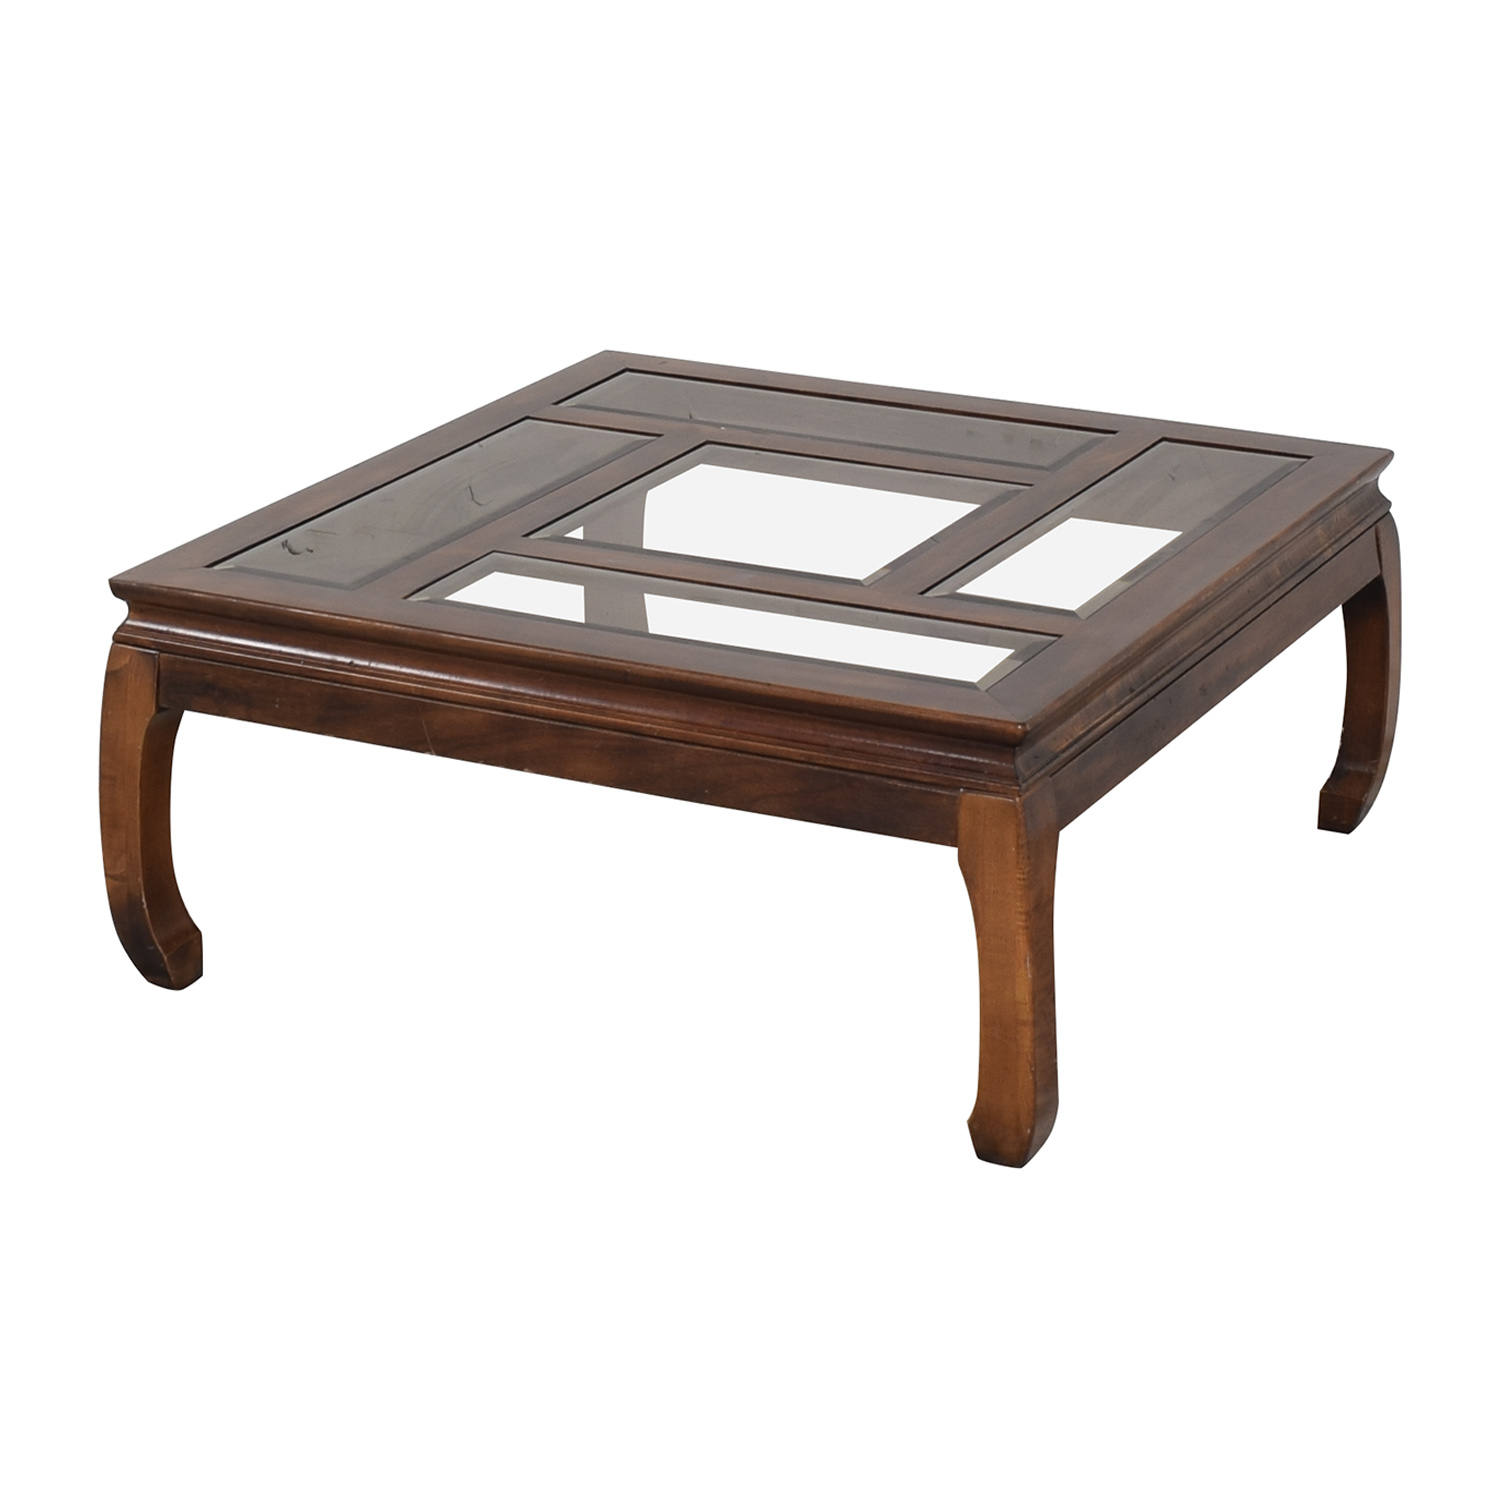 Panel Top Coffee Table / Tables